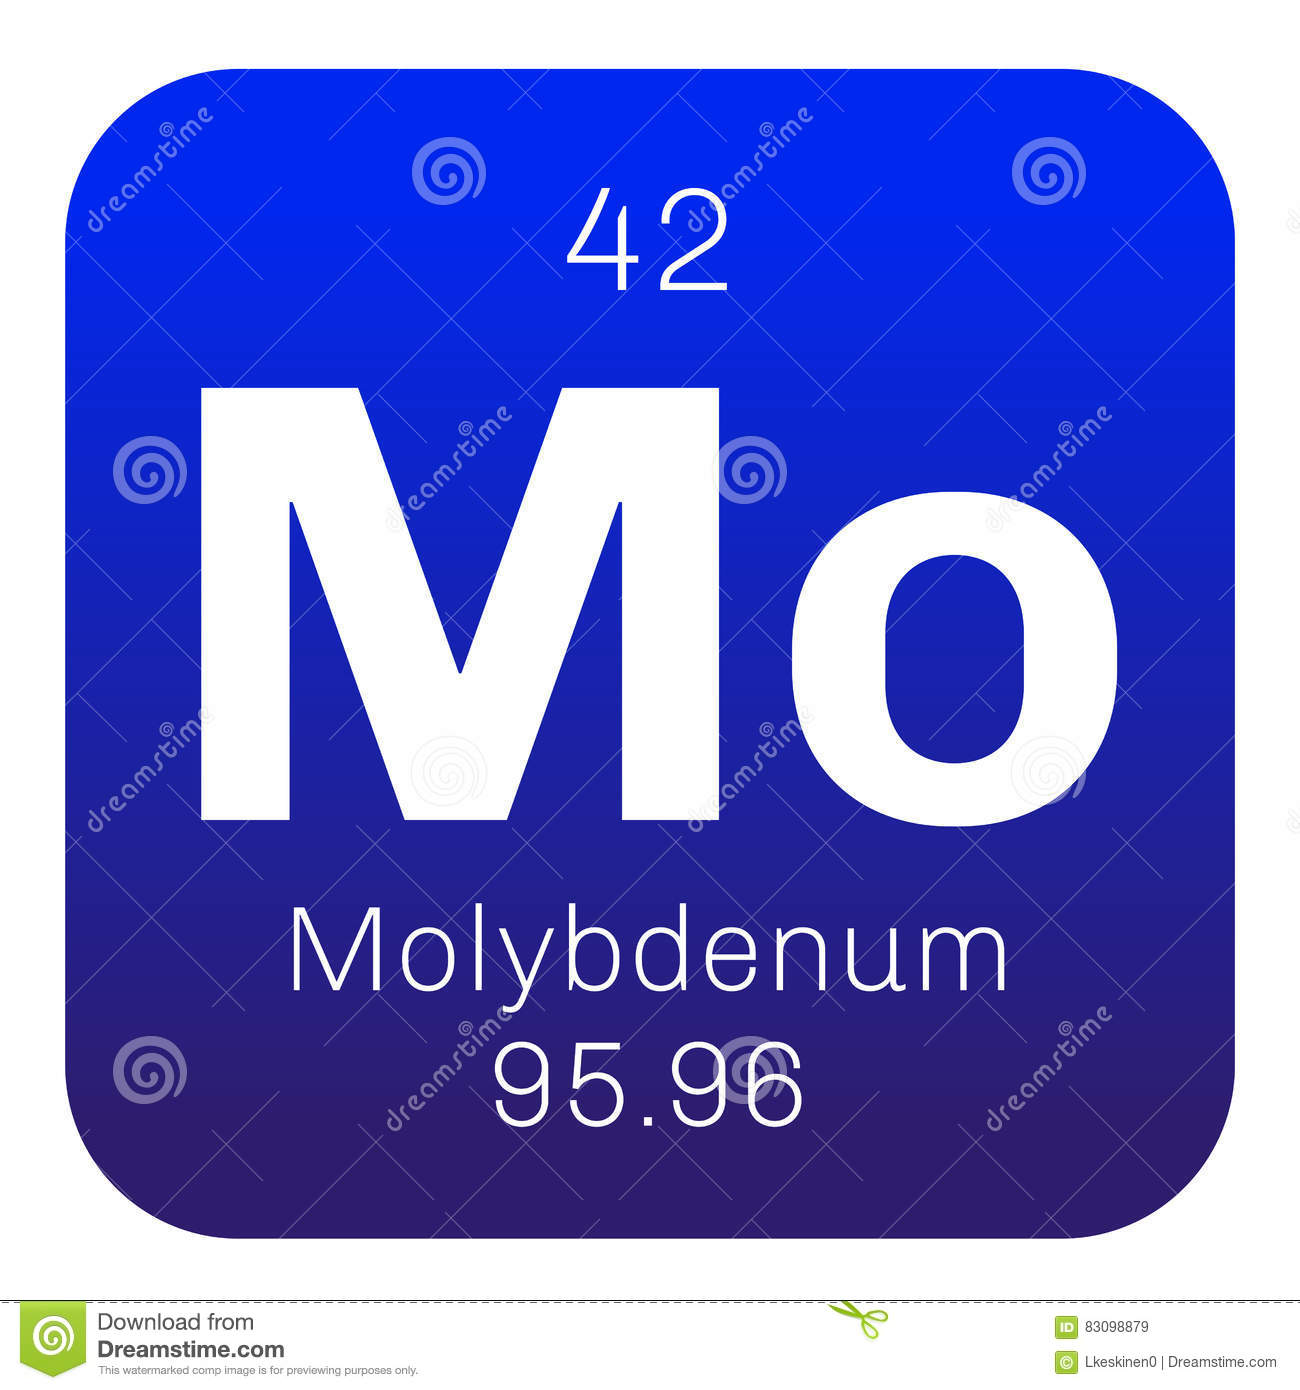 Molybdenum Chemical Element Stock Vector Illustration Of Substance